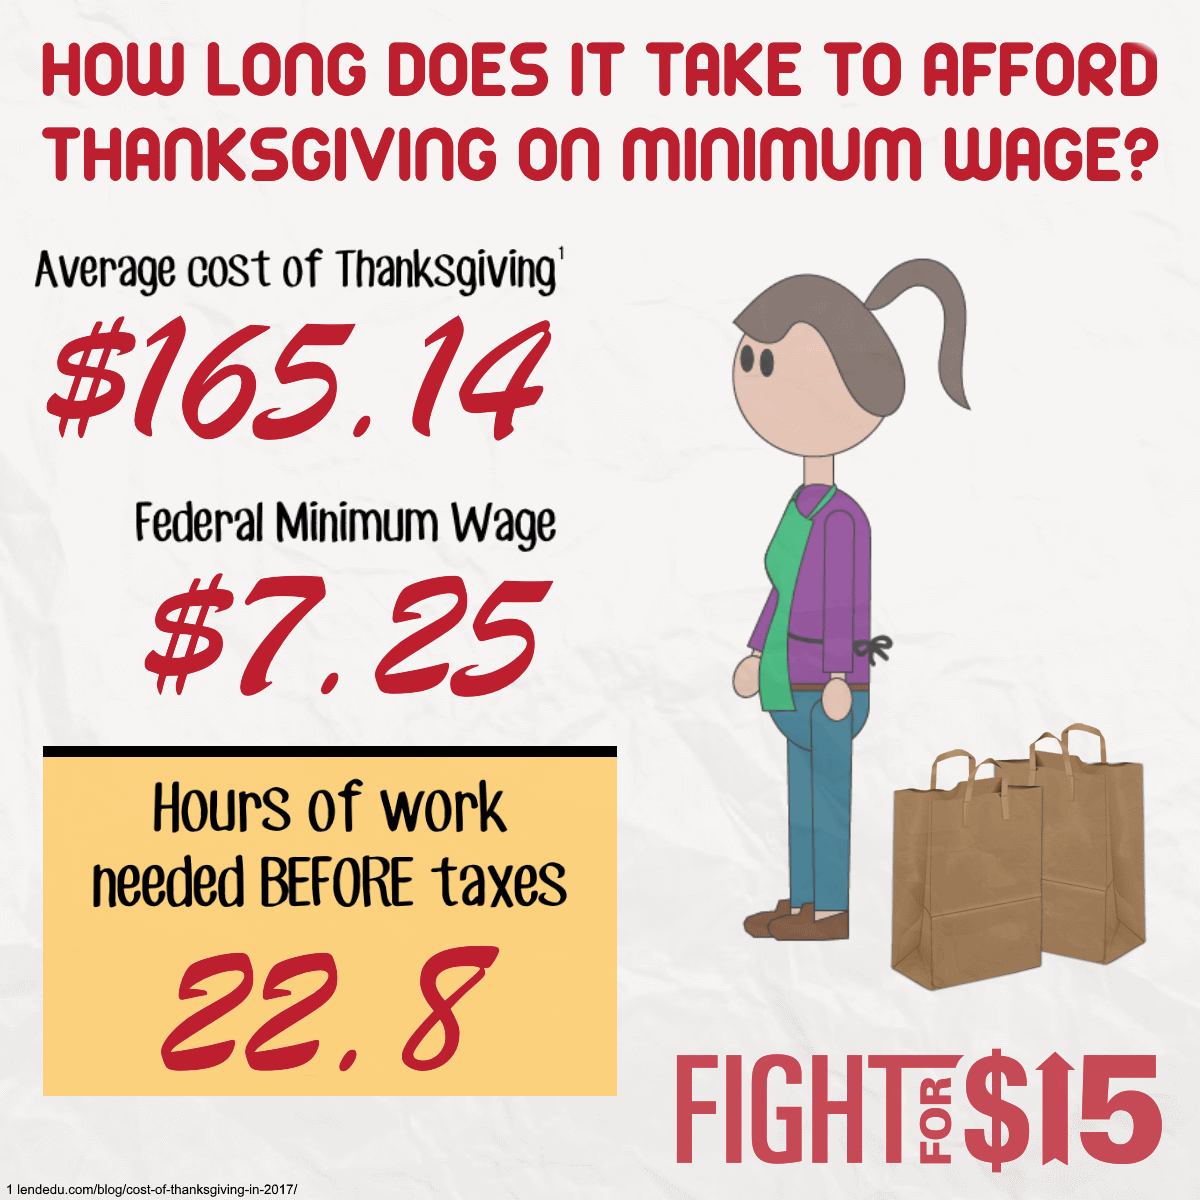 It takes a minimum wage worker about 23 hours of work to afford the cost of an average Thanksgiving holiday.